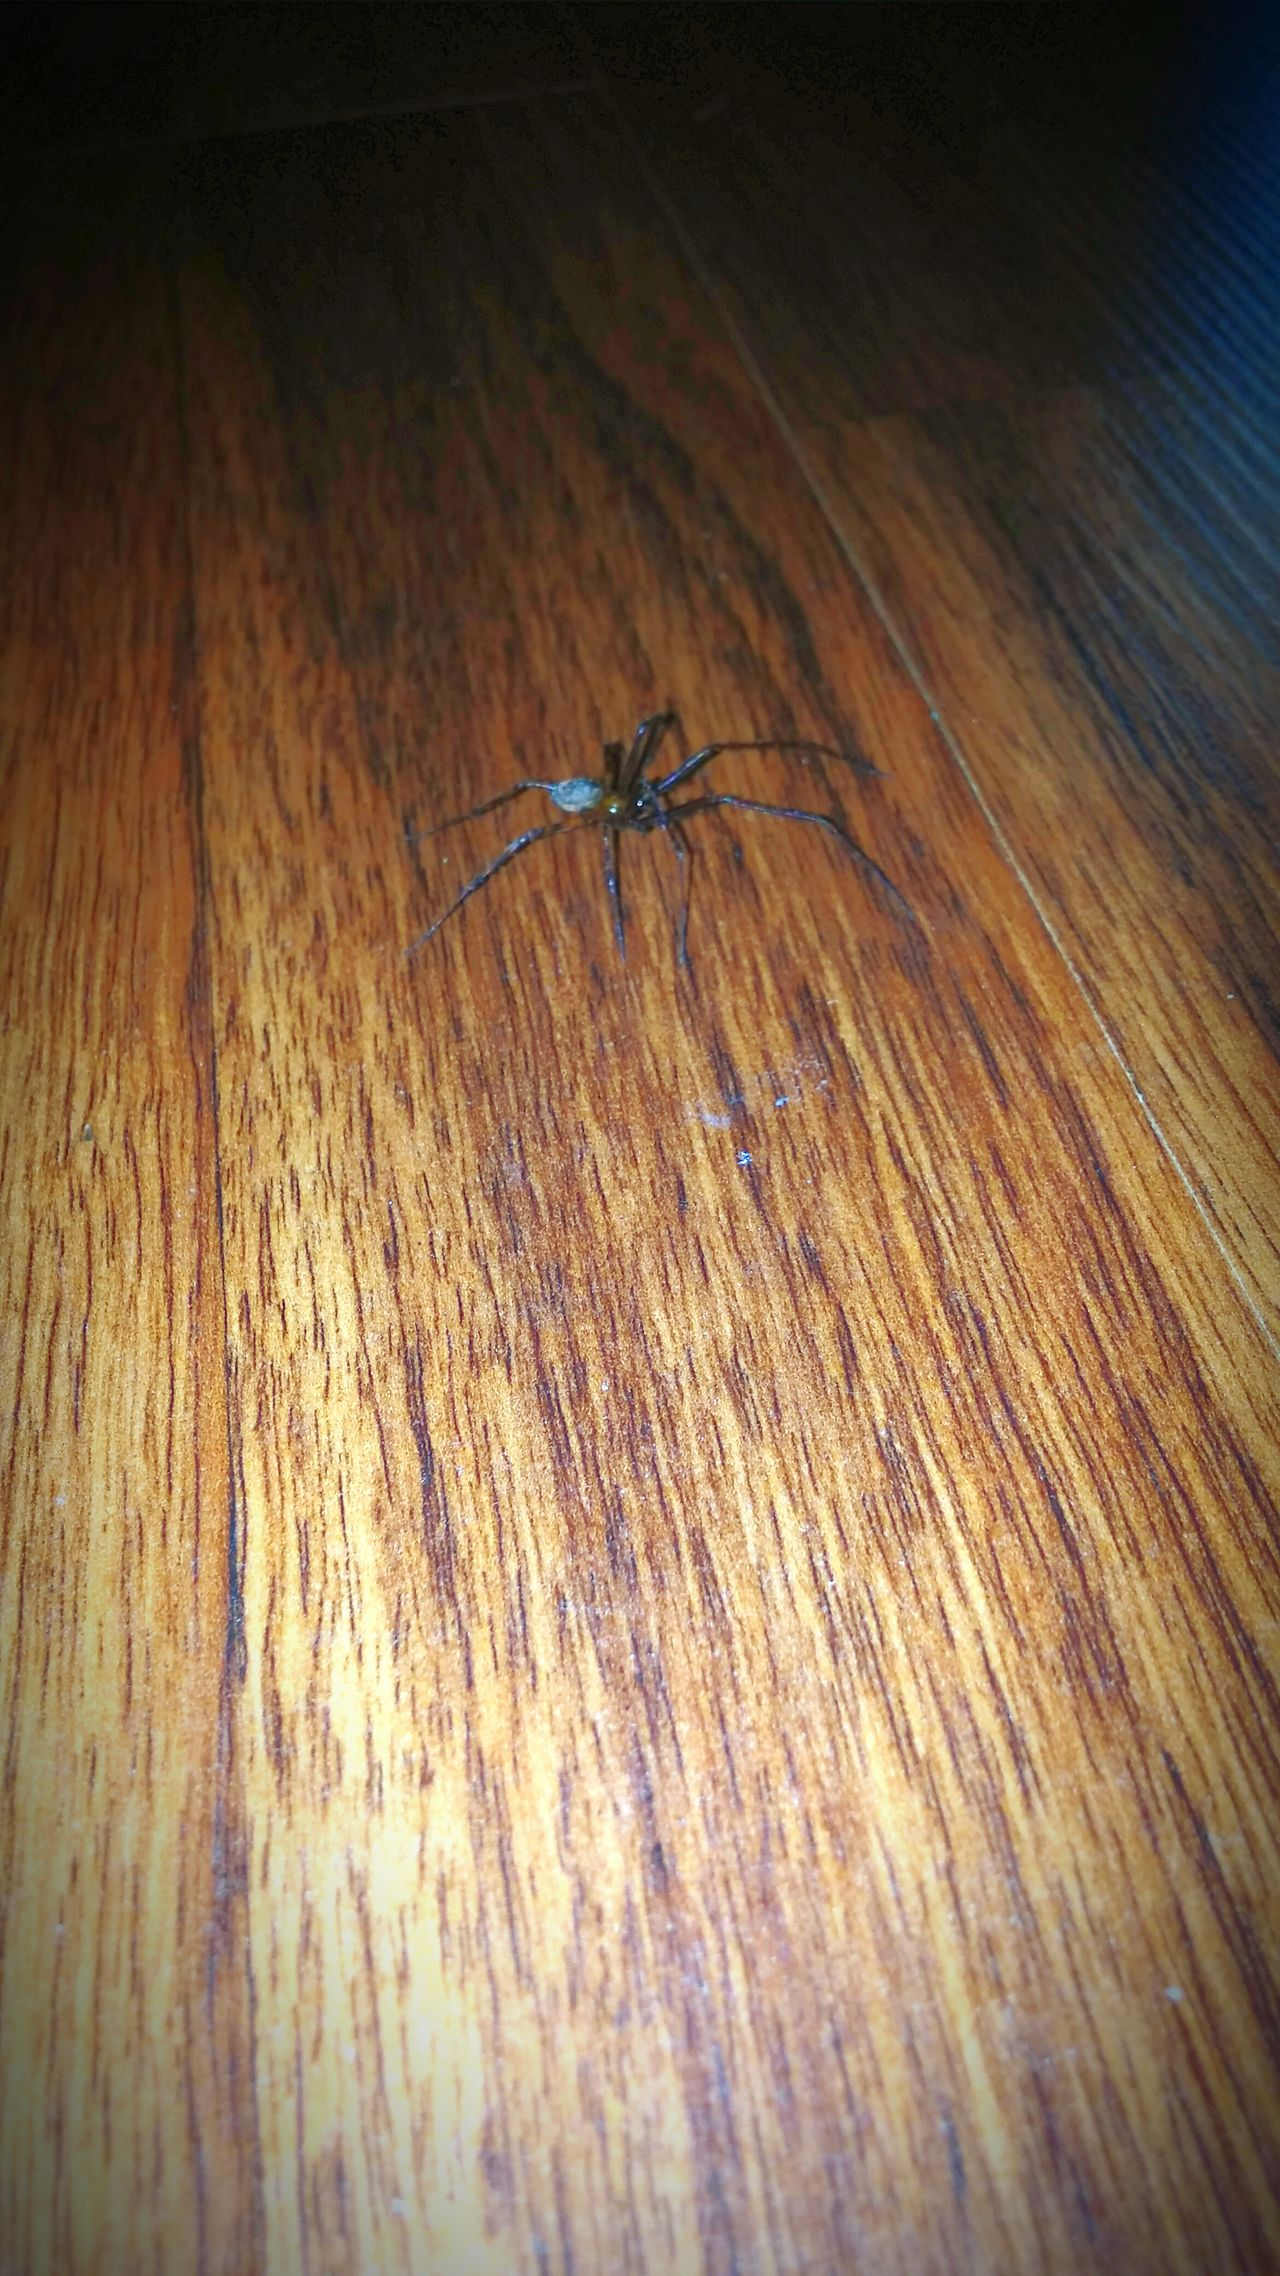 Check This Out Edited Taking Photos Visiting Visitors Spider Spiders 8 Legged Freaks Creepy